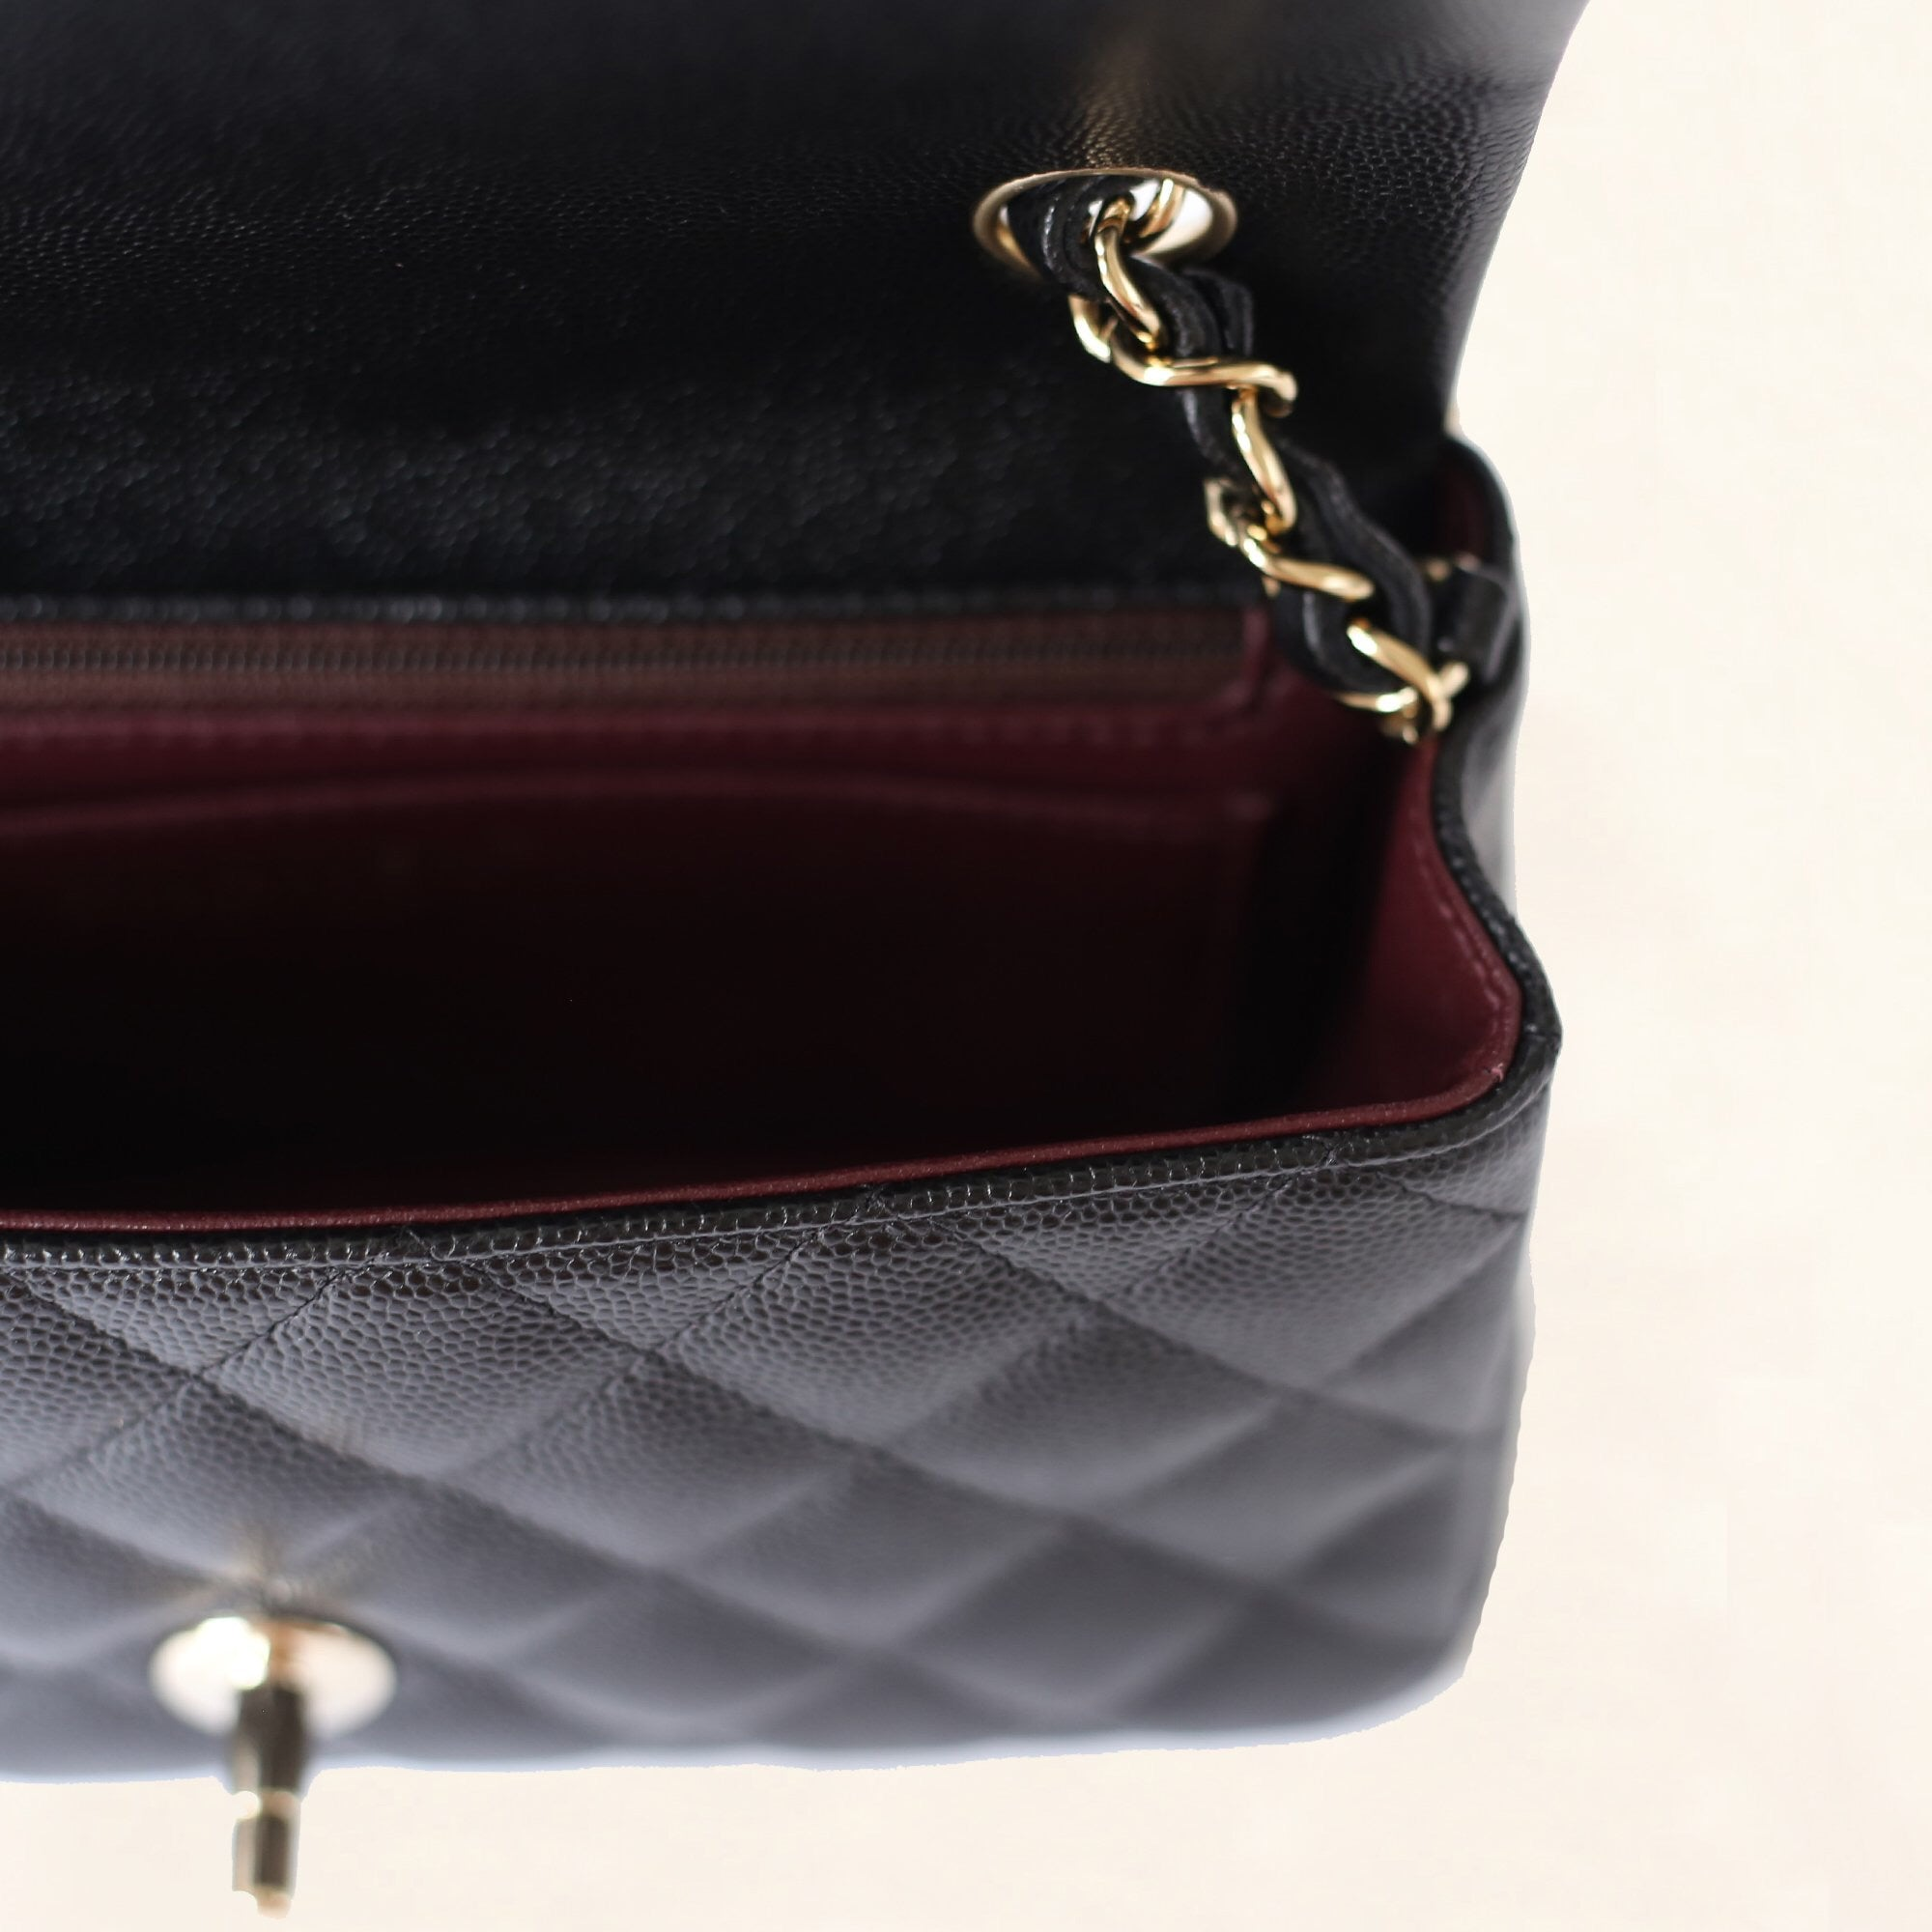 51eb3fa492cb43 ... Load image into Gallery viewer, CHANEL CAVIAR MINI RECTANGULAR FLAP BAG  ...